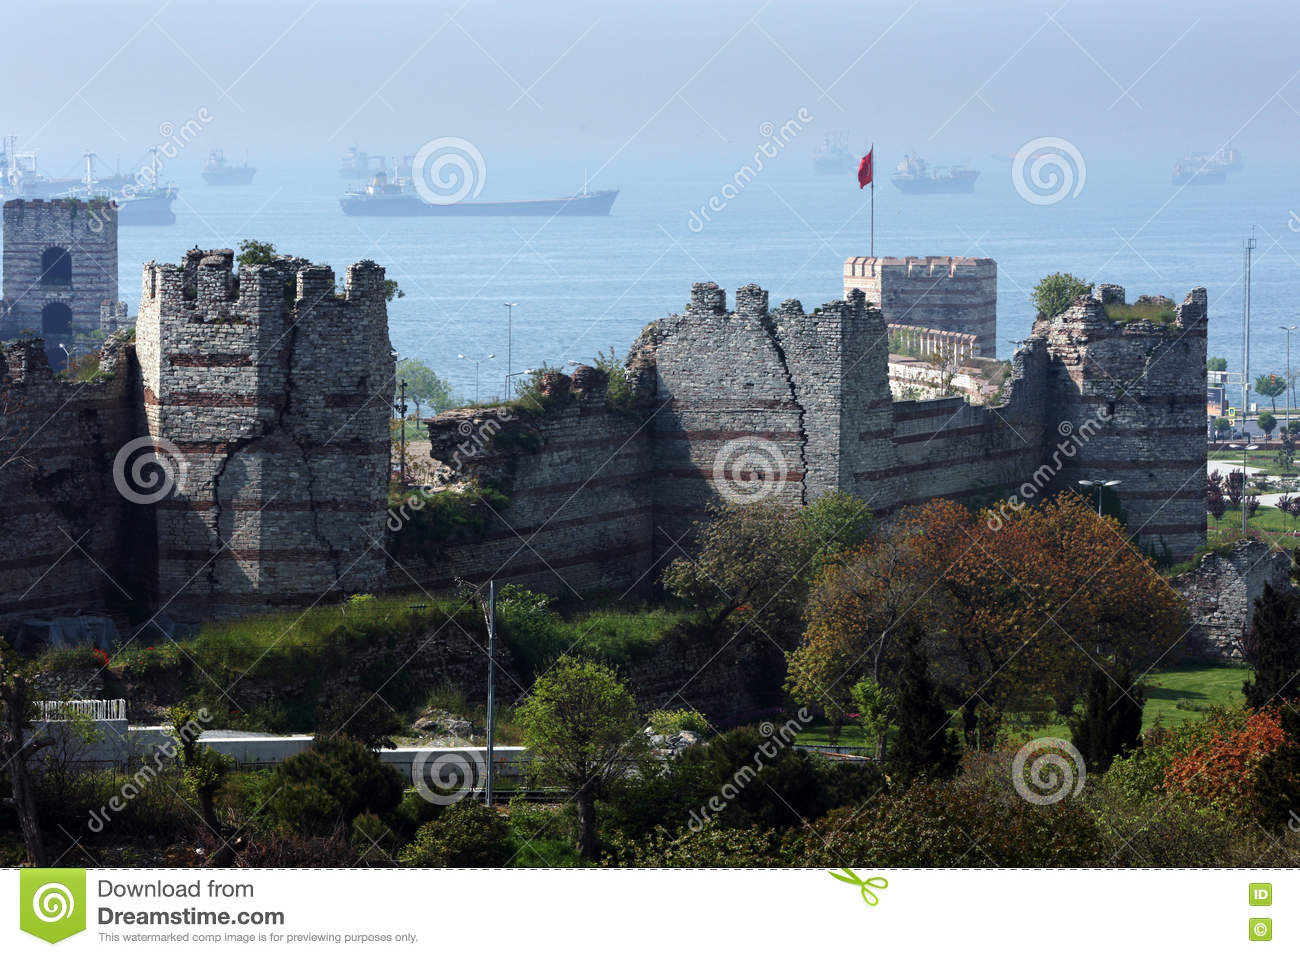 A section of the great city wall surrounding Istanbul in Turkey.